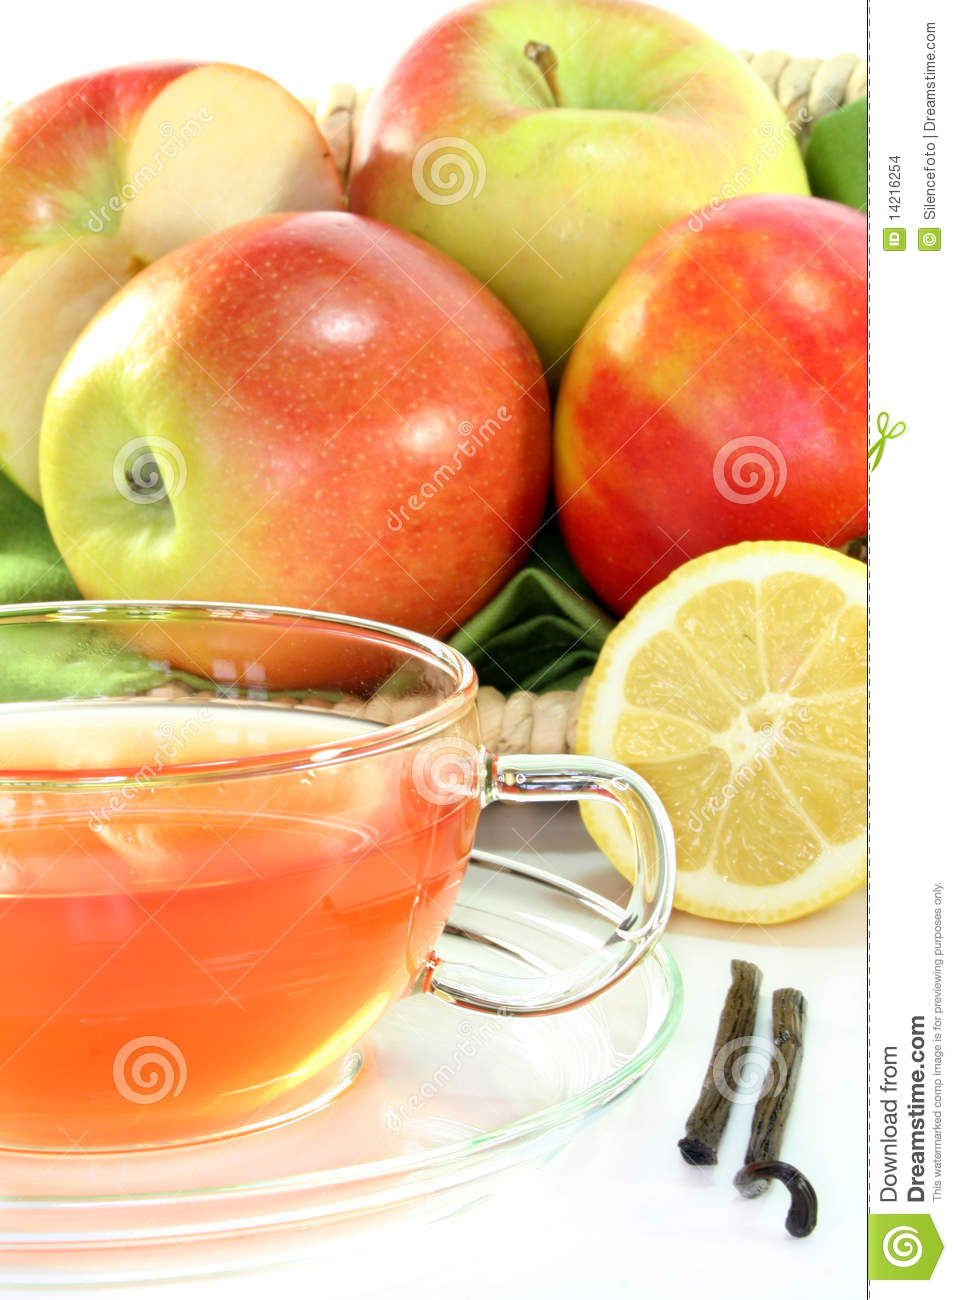 Apple Vanilla Lemon Tea with fresh apples, lemons and vanilla.